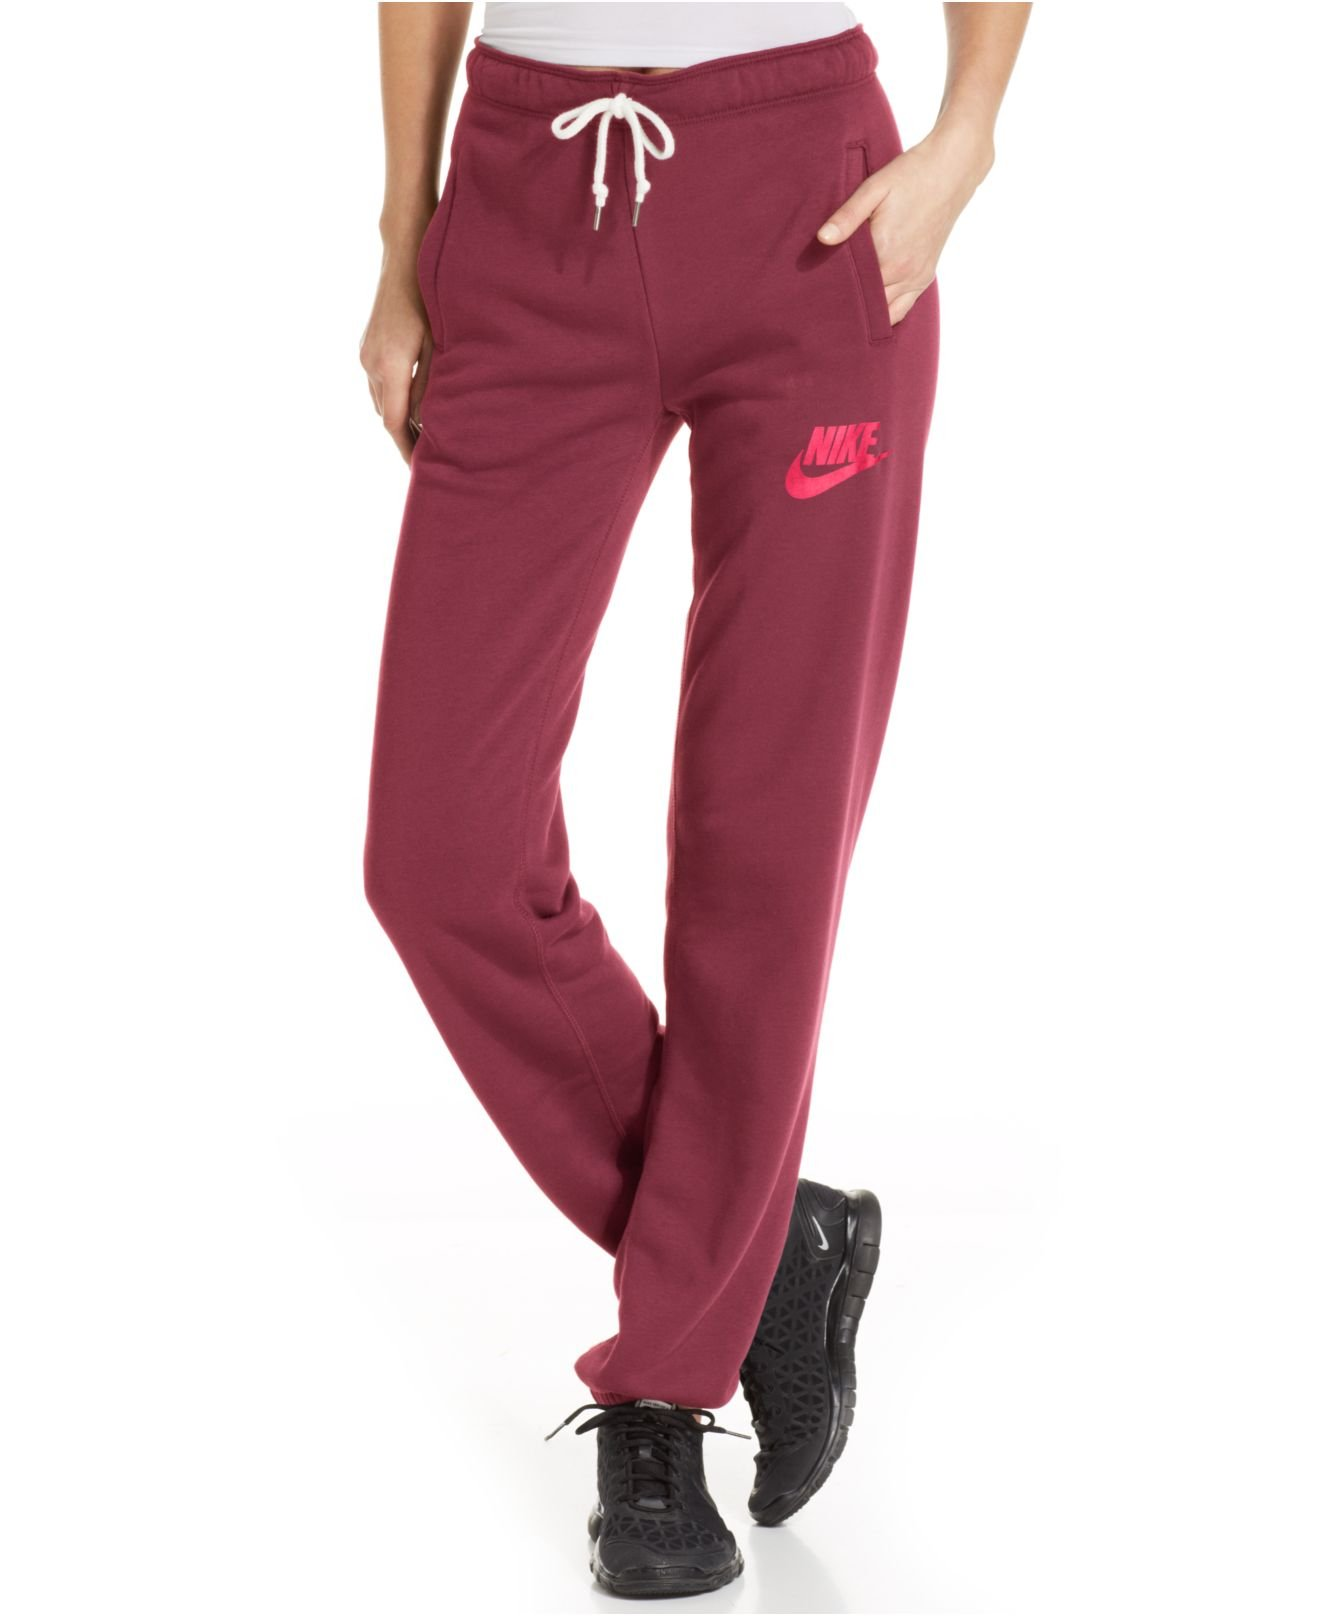 a04df926e099 Nike Maroon Sweatpants